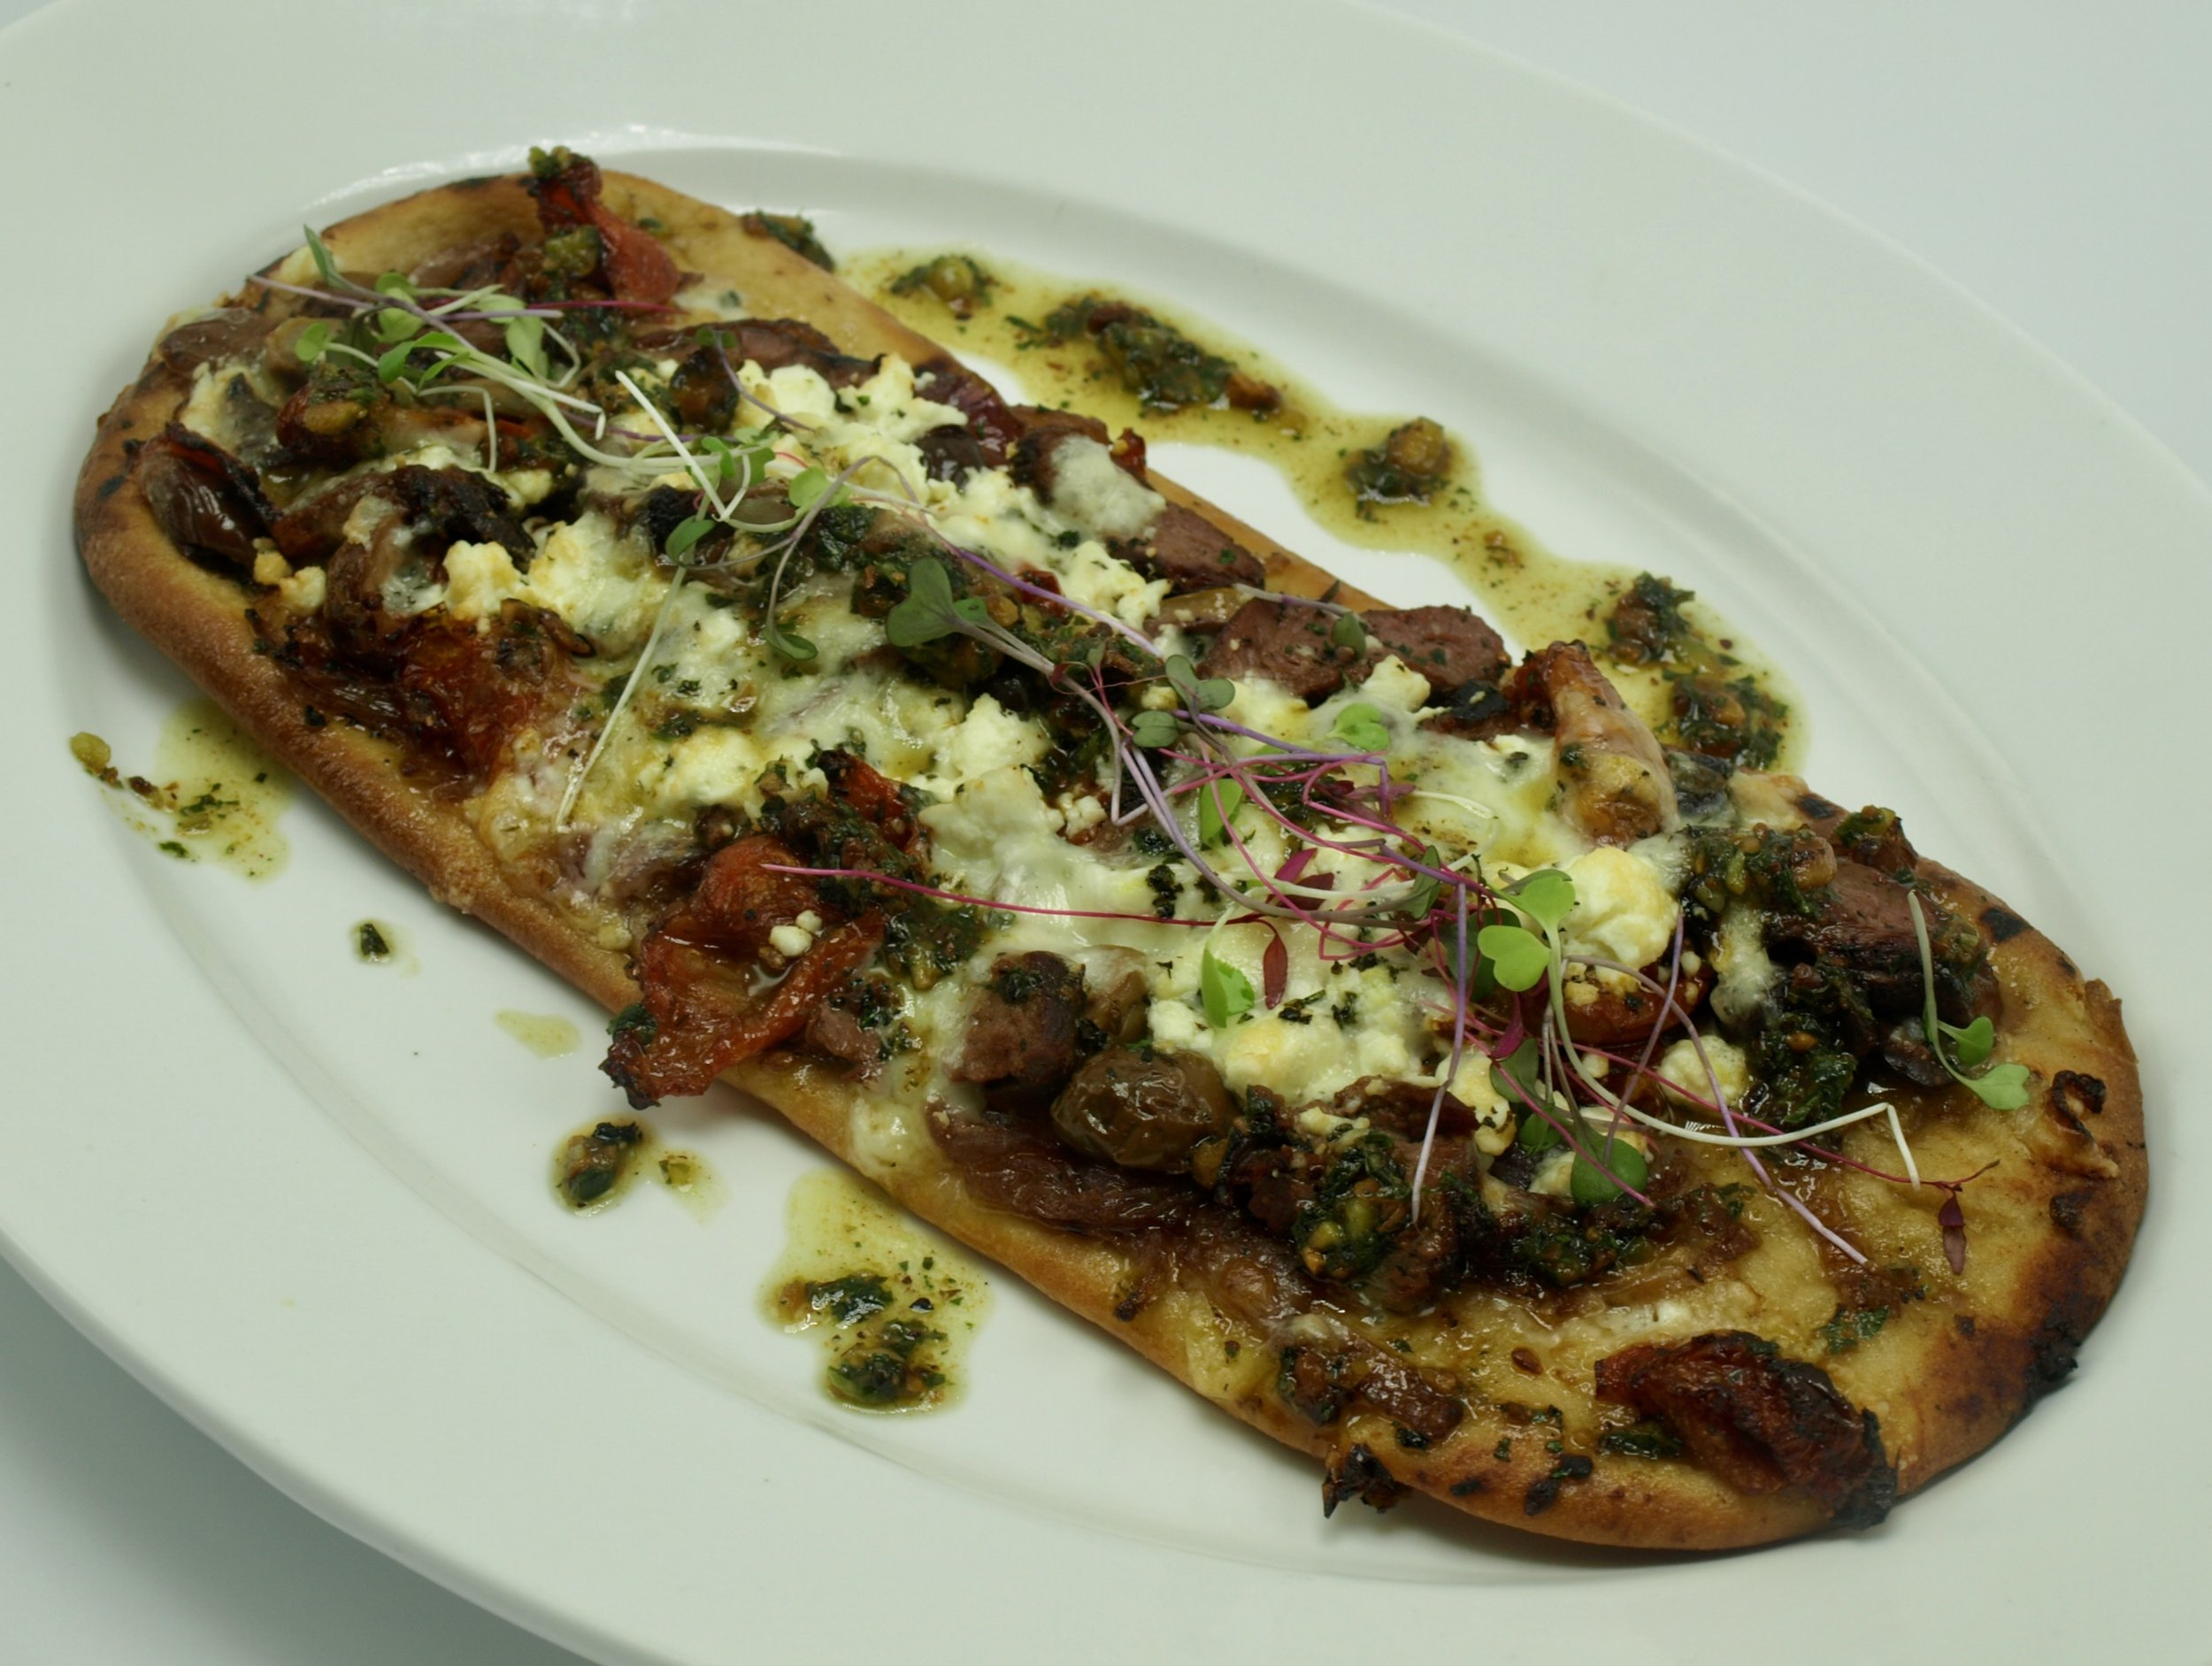 Mediterranean Flatbread with tenderloin, caramelized red onion, kalamata olives, cured tomato, feta, fontina and toasted pistachio pesto.